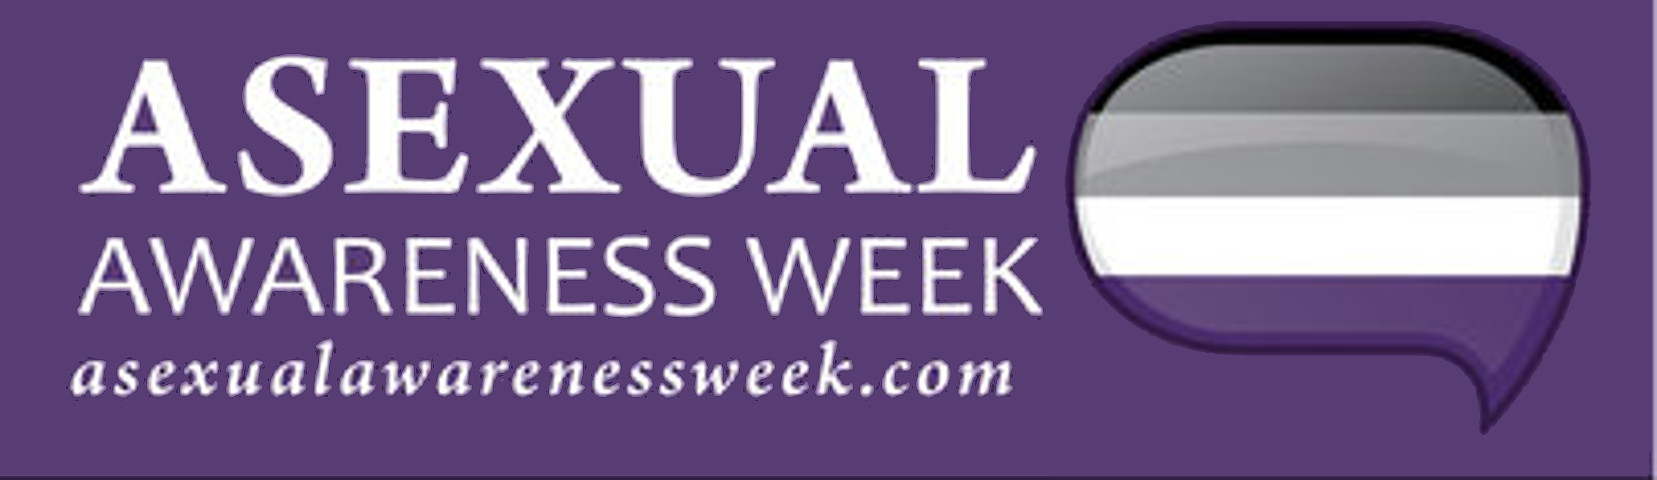 Asexual Awareness Week logo